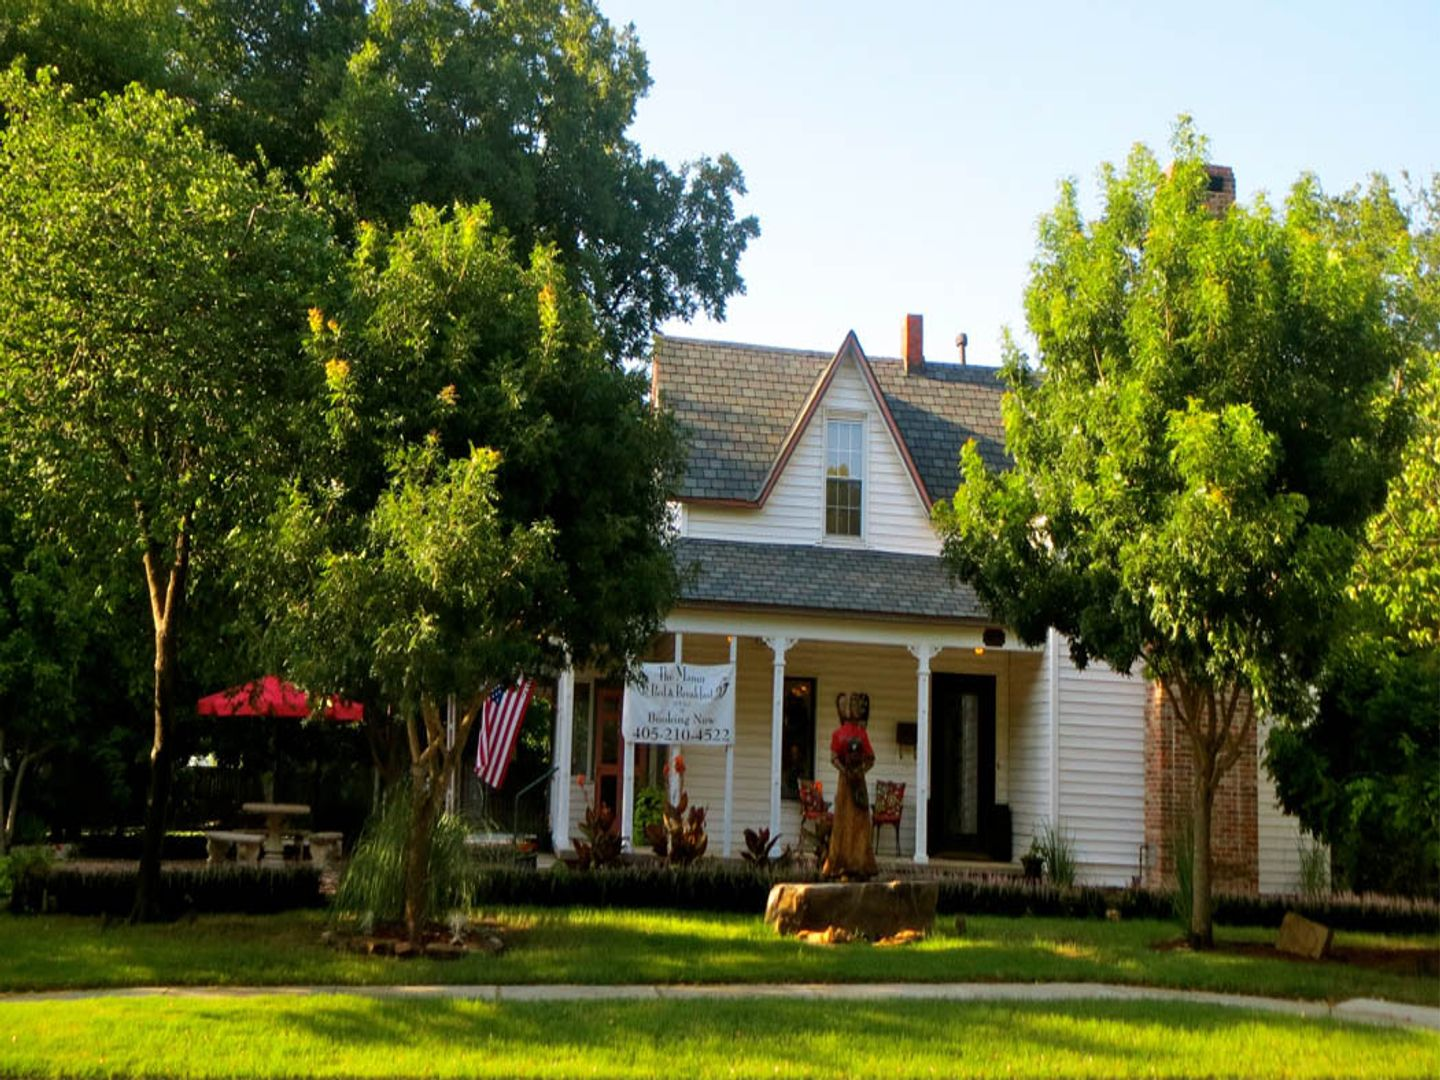 A tree in front of a house at The Manor Bed and Breakfast.